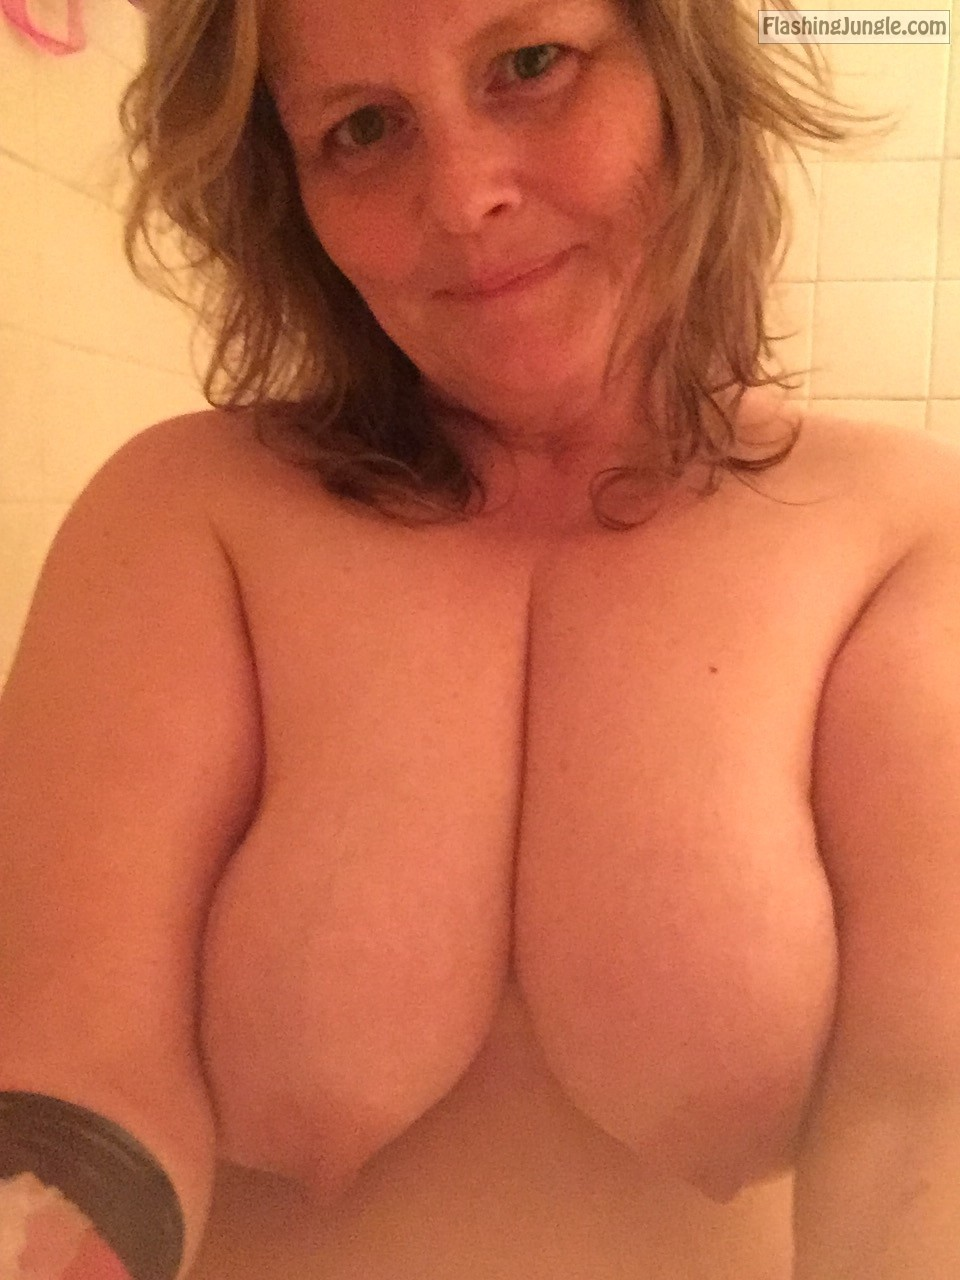 Real Nudity MILF Flashing Pics Hotwife Pics Boobs Flash Pics